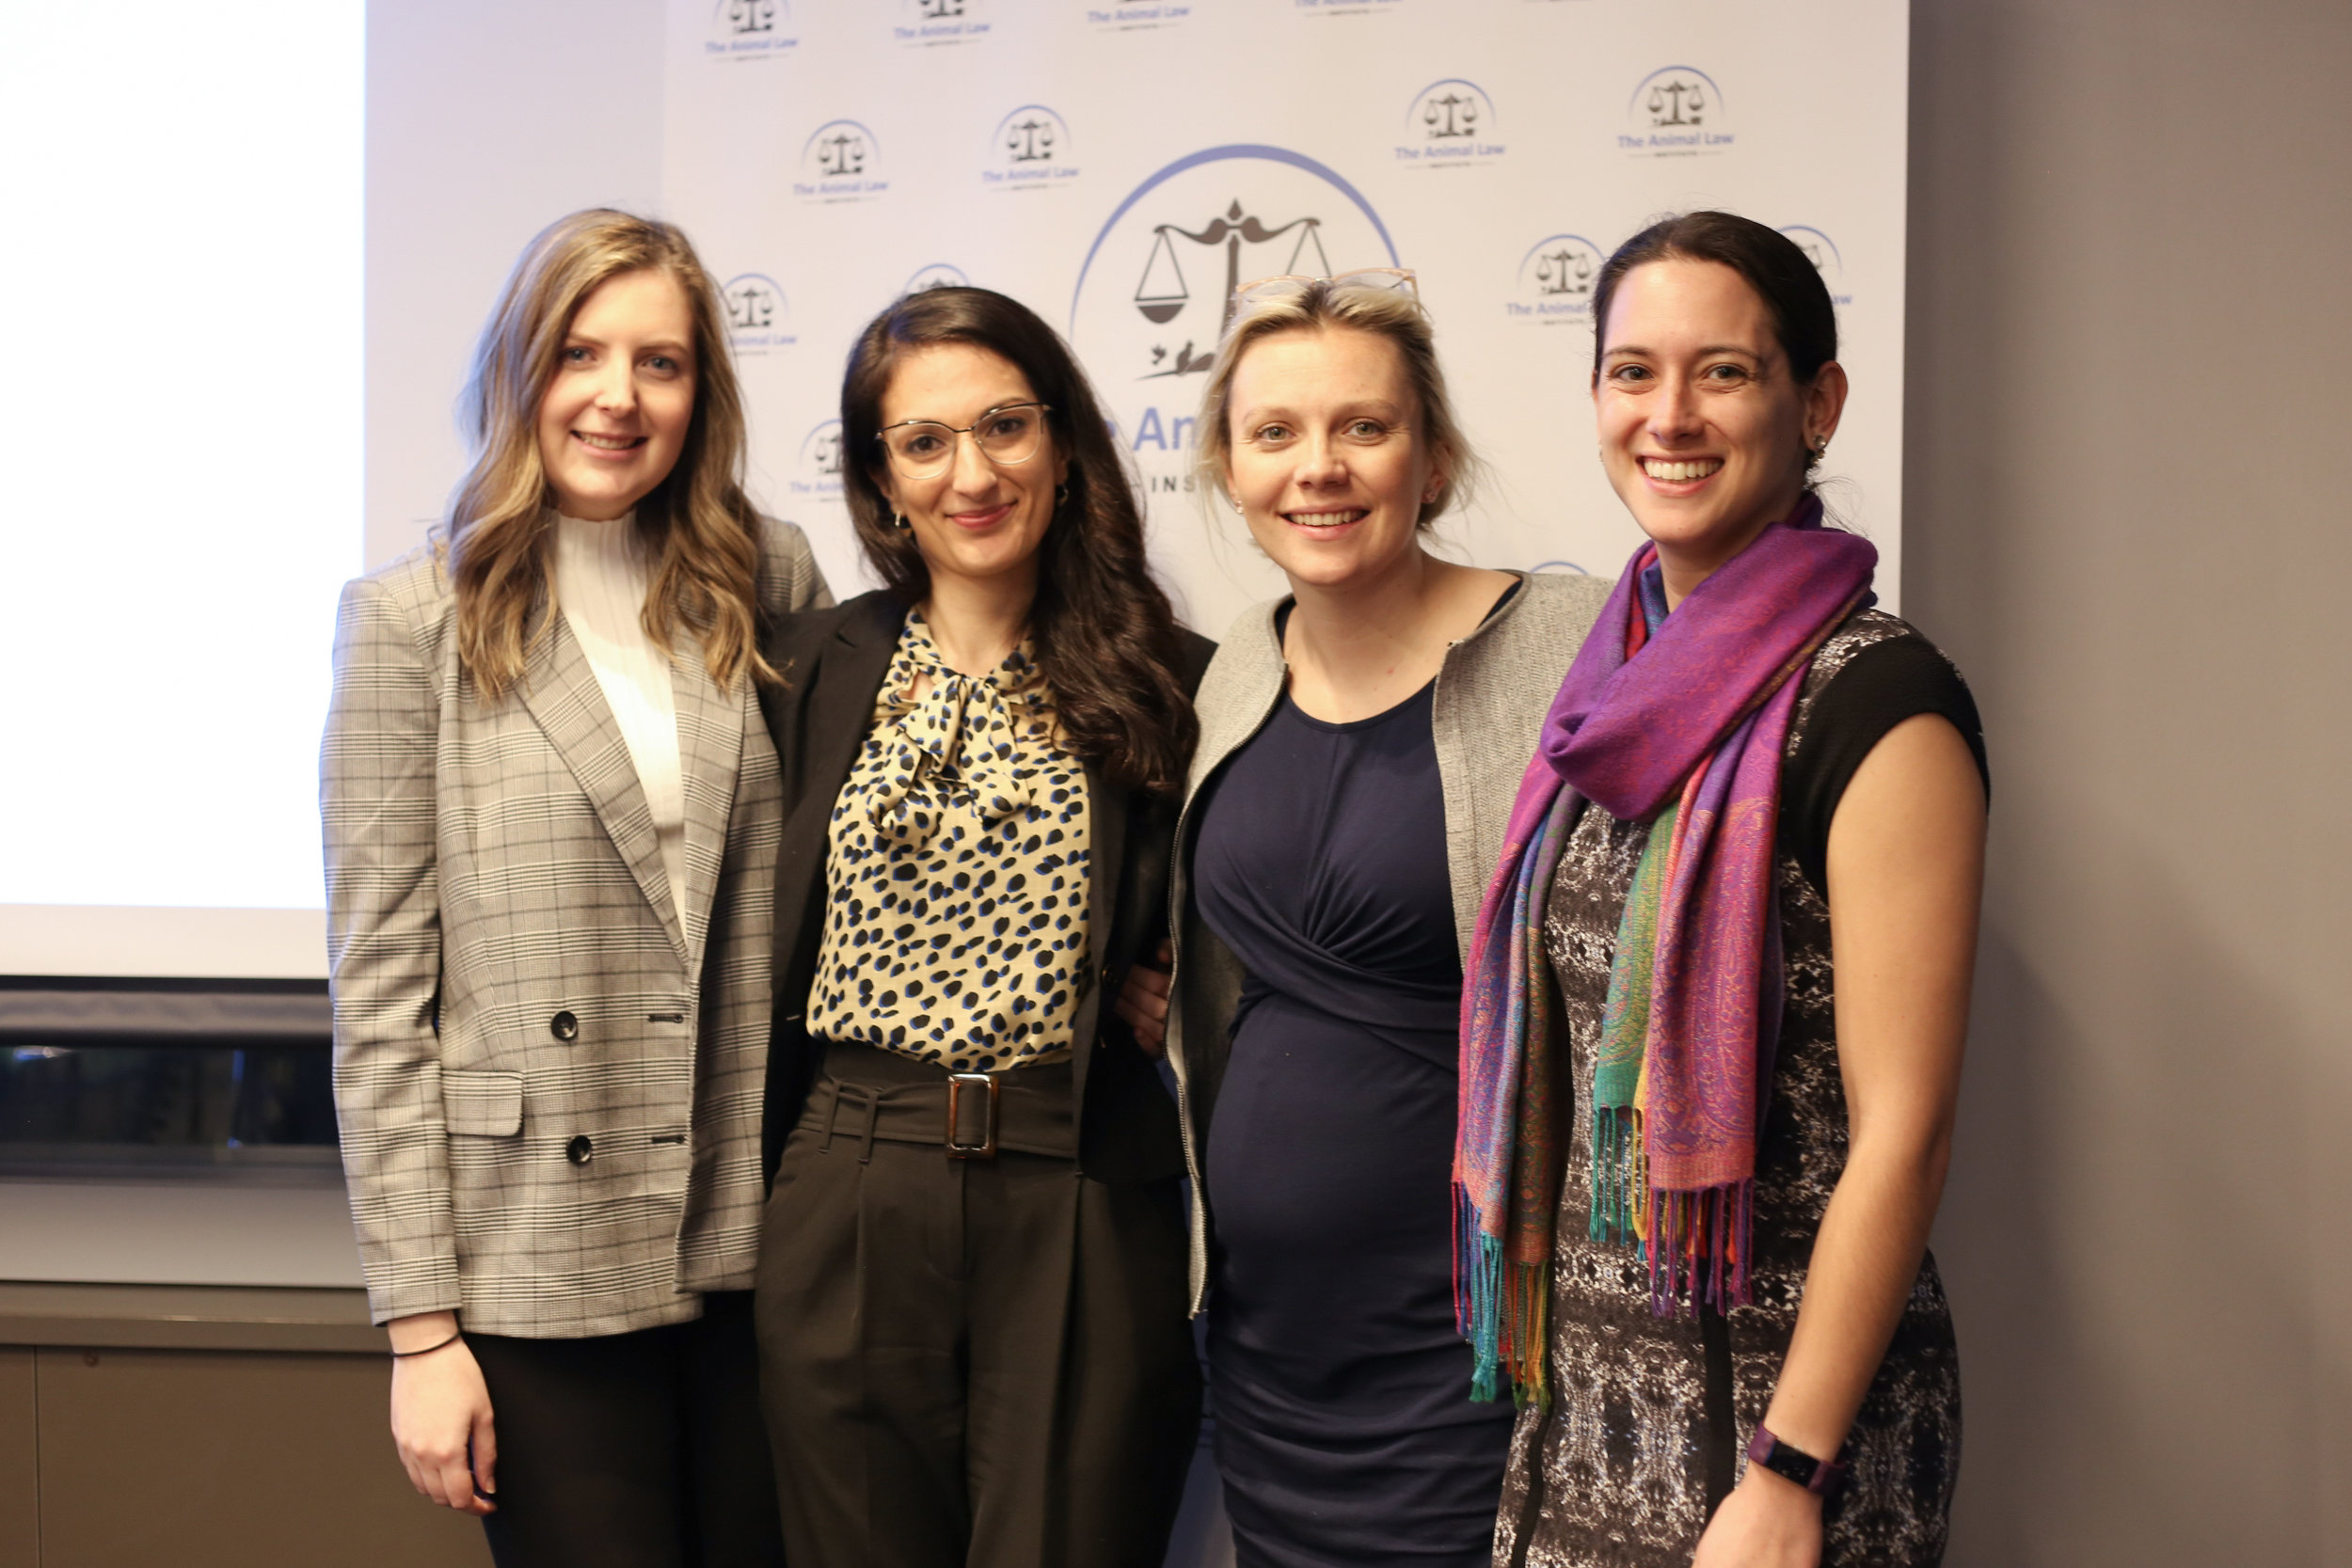 Melbourne volunteer lawyers Greta Walters, Avishan Bird, Anastasia Smietanka and Louise McNeil